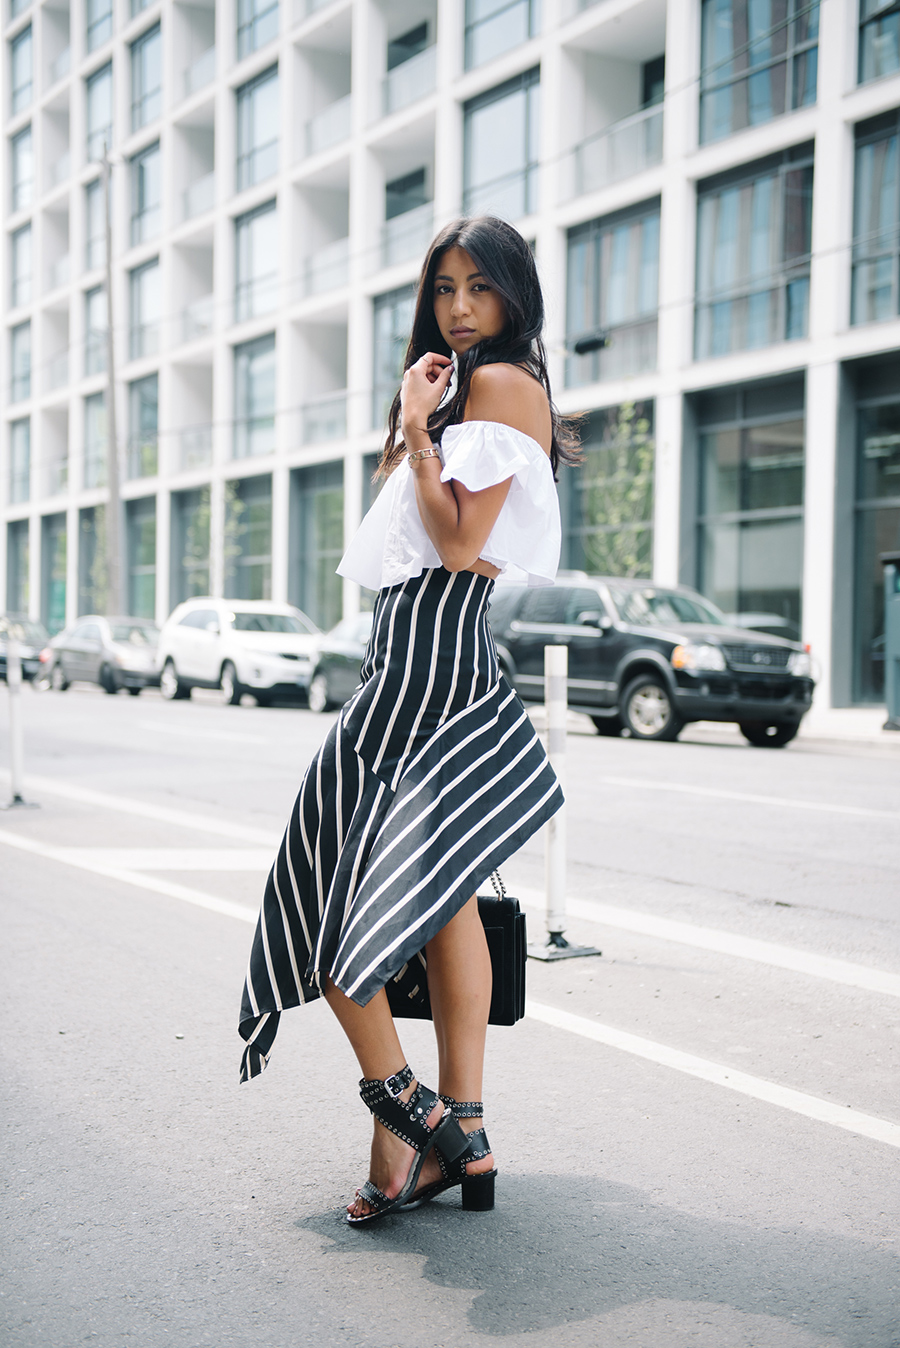 Why not try wearing an off the shoulder blouse like this one with a statement maxi skirt? Kayla Seah is rocking this look, pairing a simple white top with a vibrant asymmetrical skirt for an overall edgy and alternative look! Skirt: Third Form, Top: Zara, Sandals: Isabel Marant, Bag: Gucci.